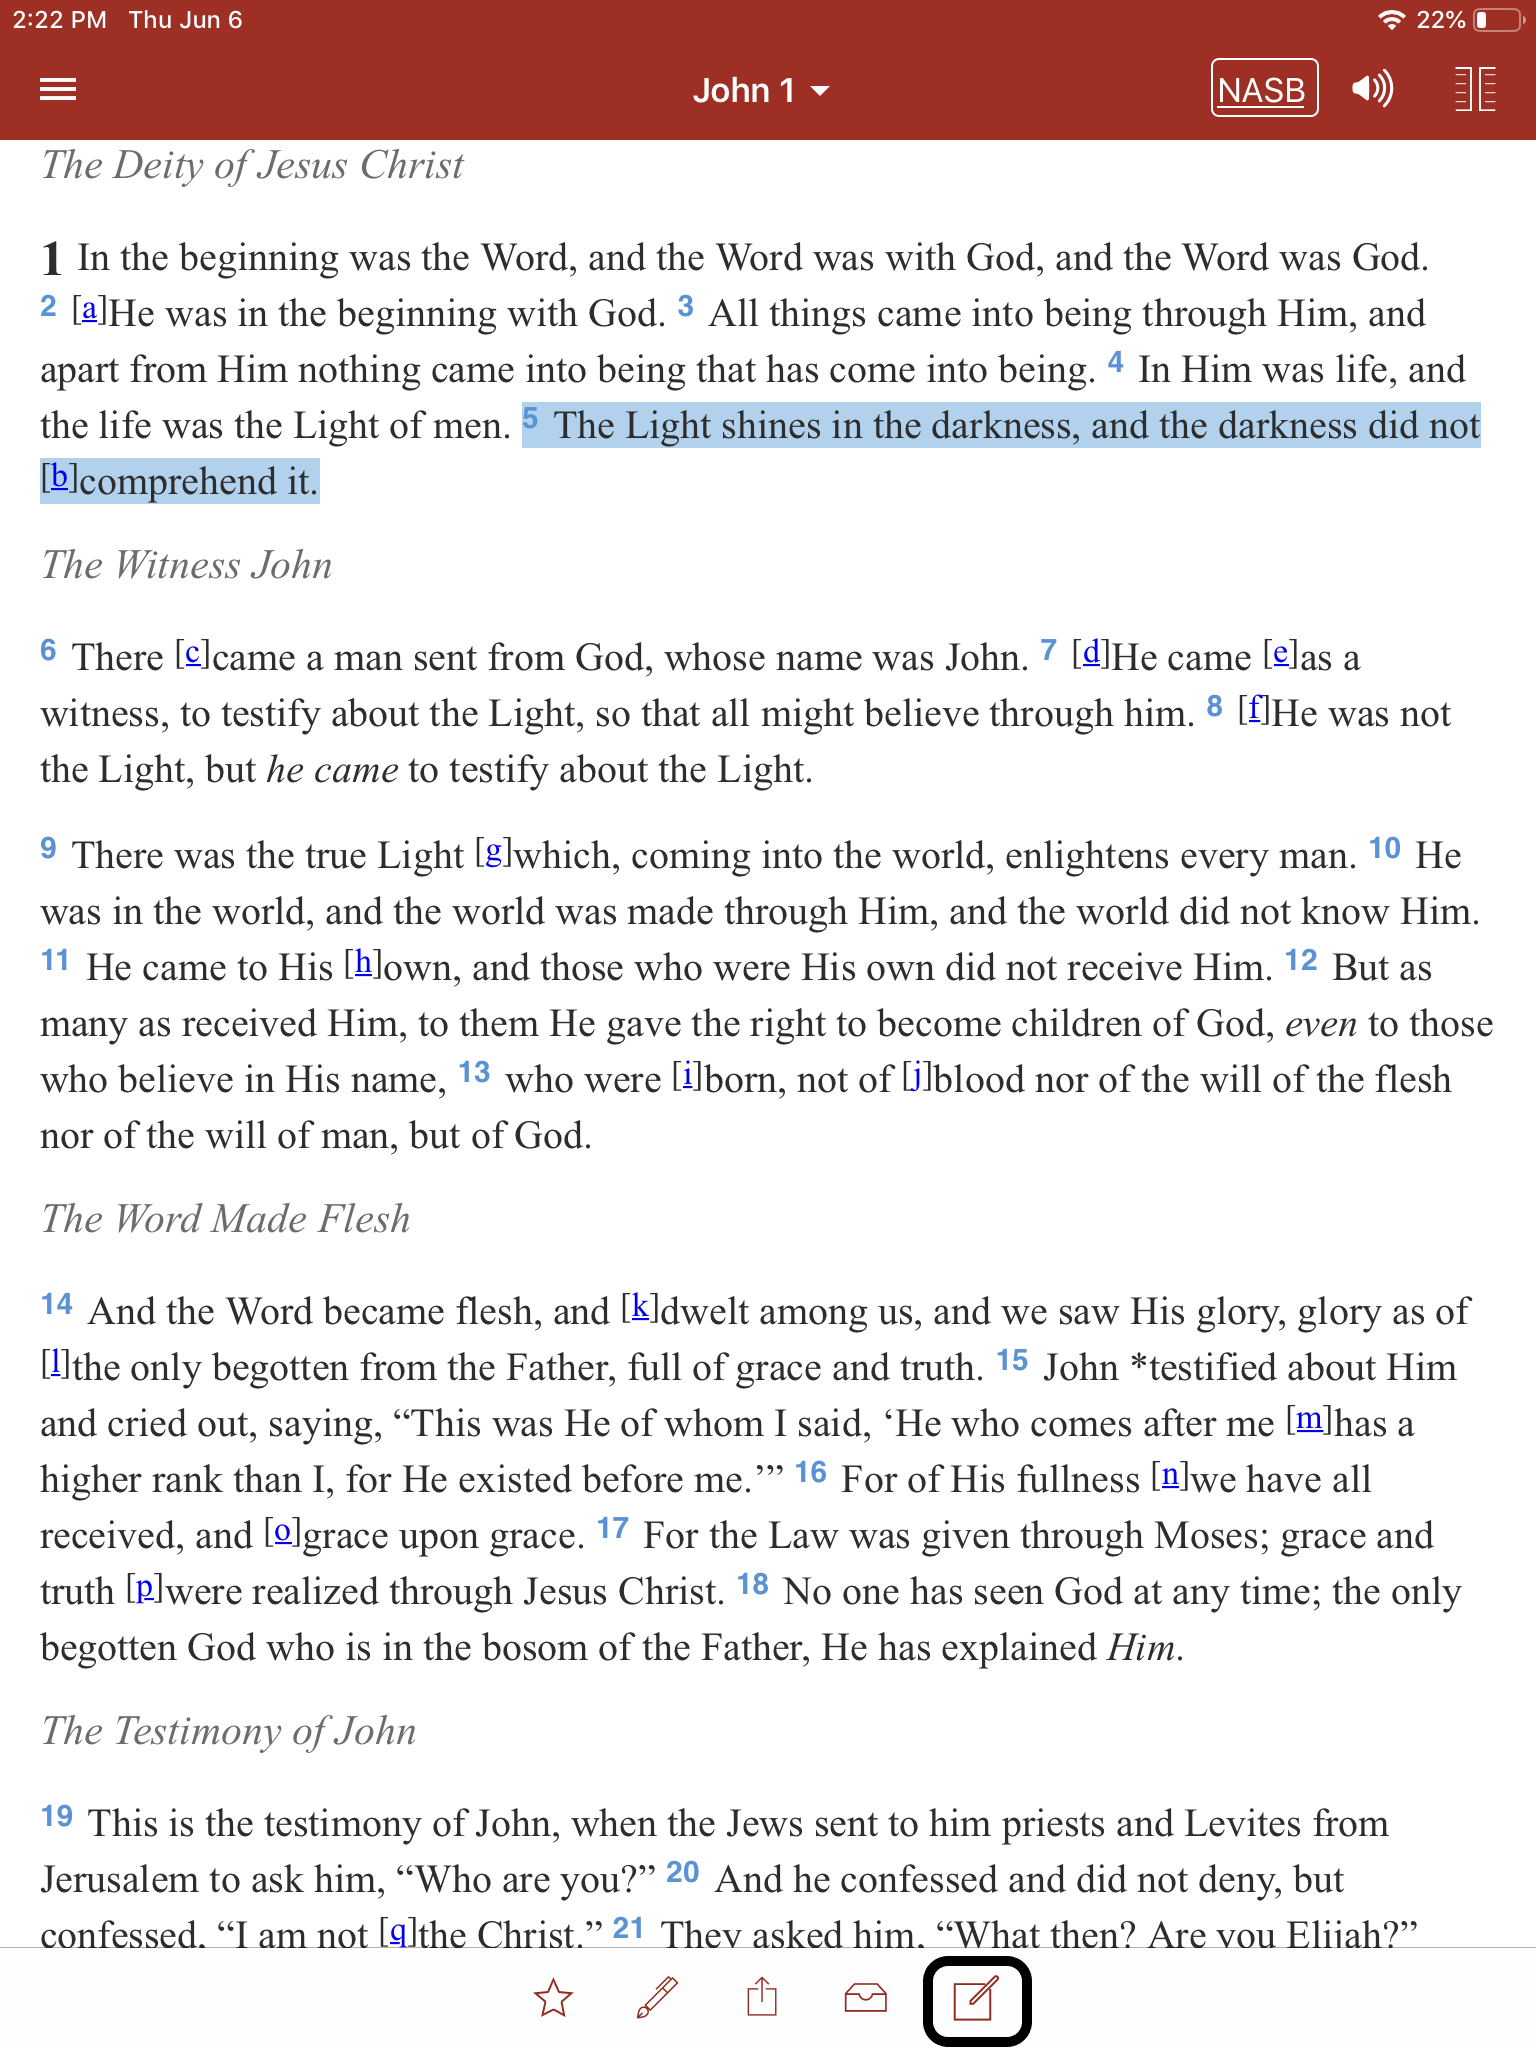 BG_iOS_Bible_Screen_with_New_Note_Box.png